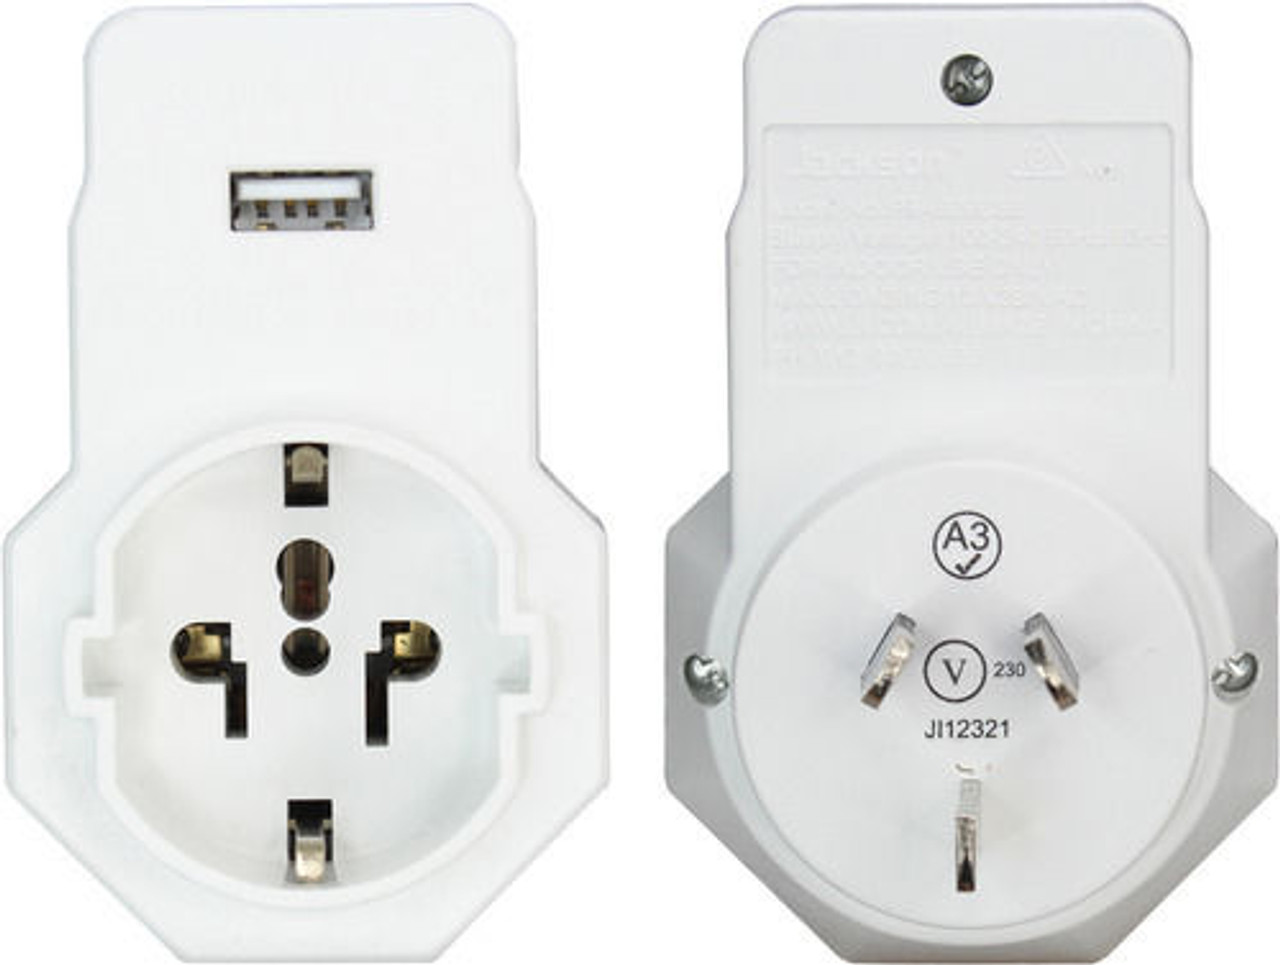 Jackson PTA929USB Inbound Travel Adaptor with USB - Suits European and USA plugs